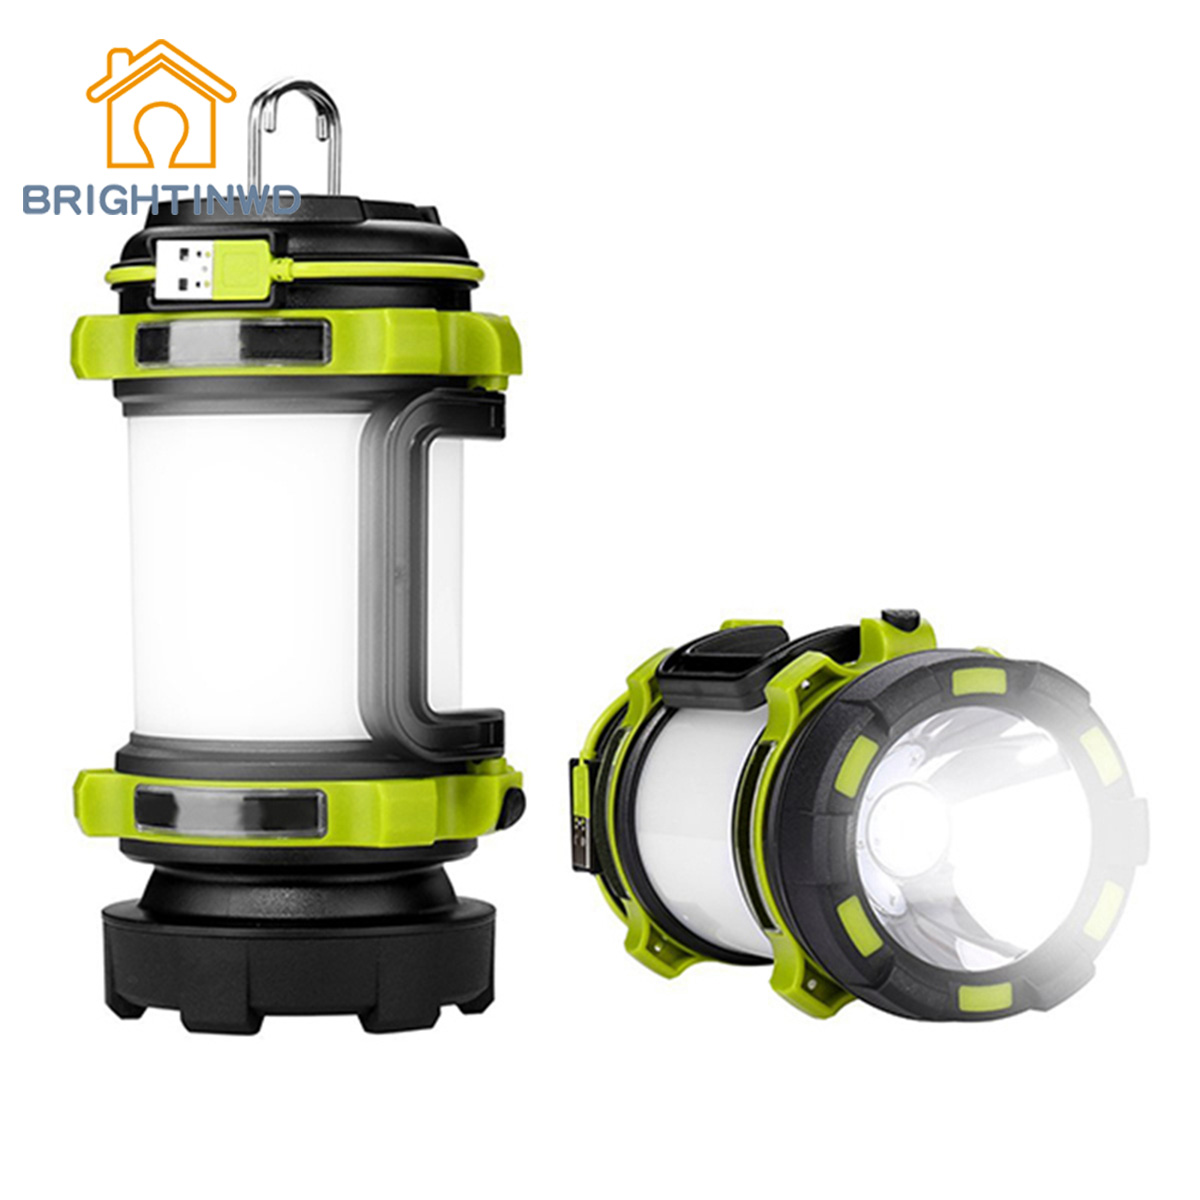 BRIGHTINWD LED Camping Lantern Spotlight Flashlight Waterproof Rechargeable 2600mAh Power Bank DC5V Hiking Emergency Tent стоимость